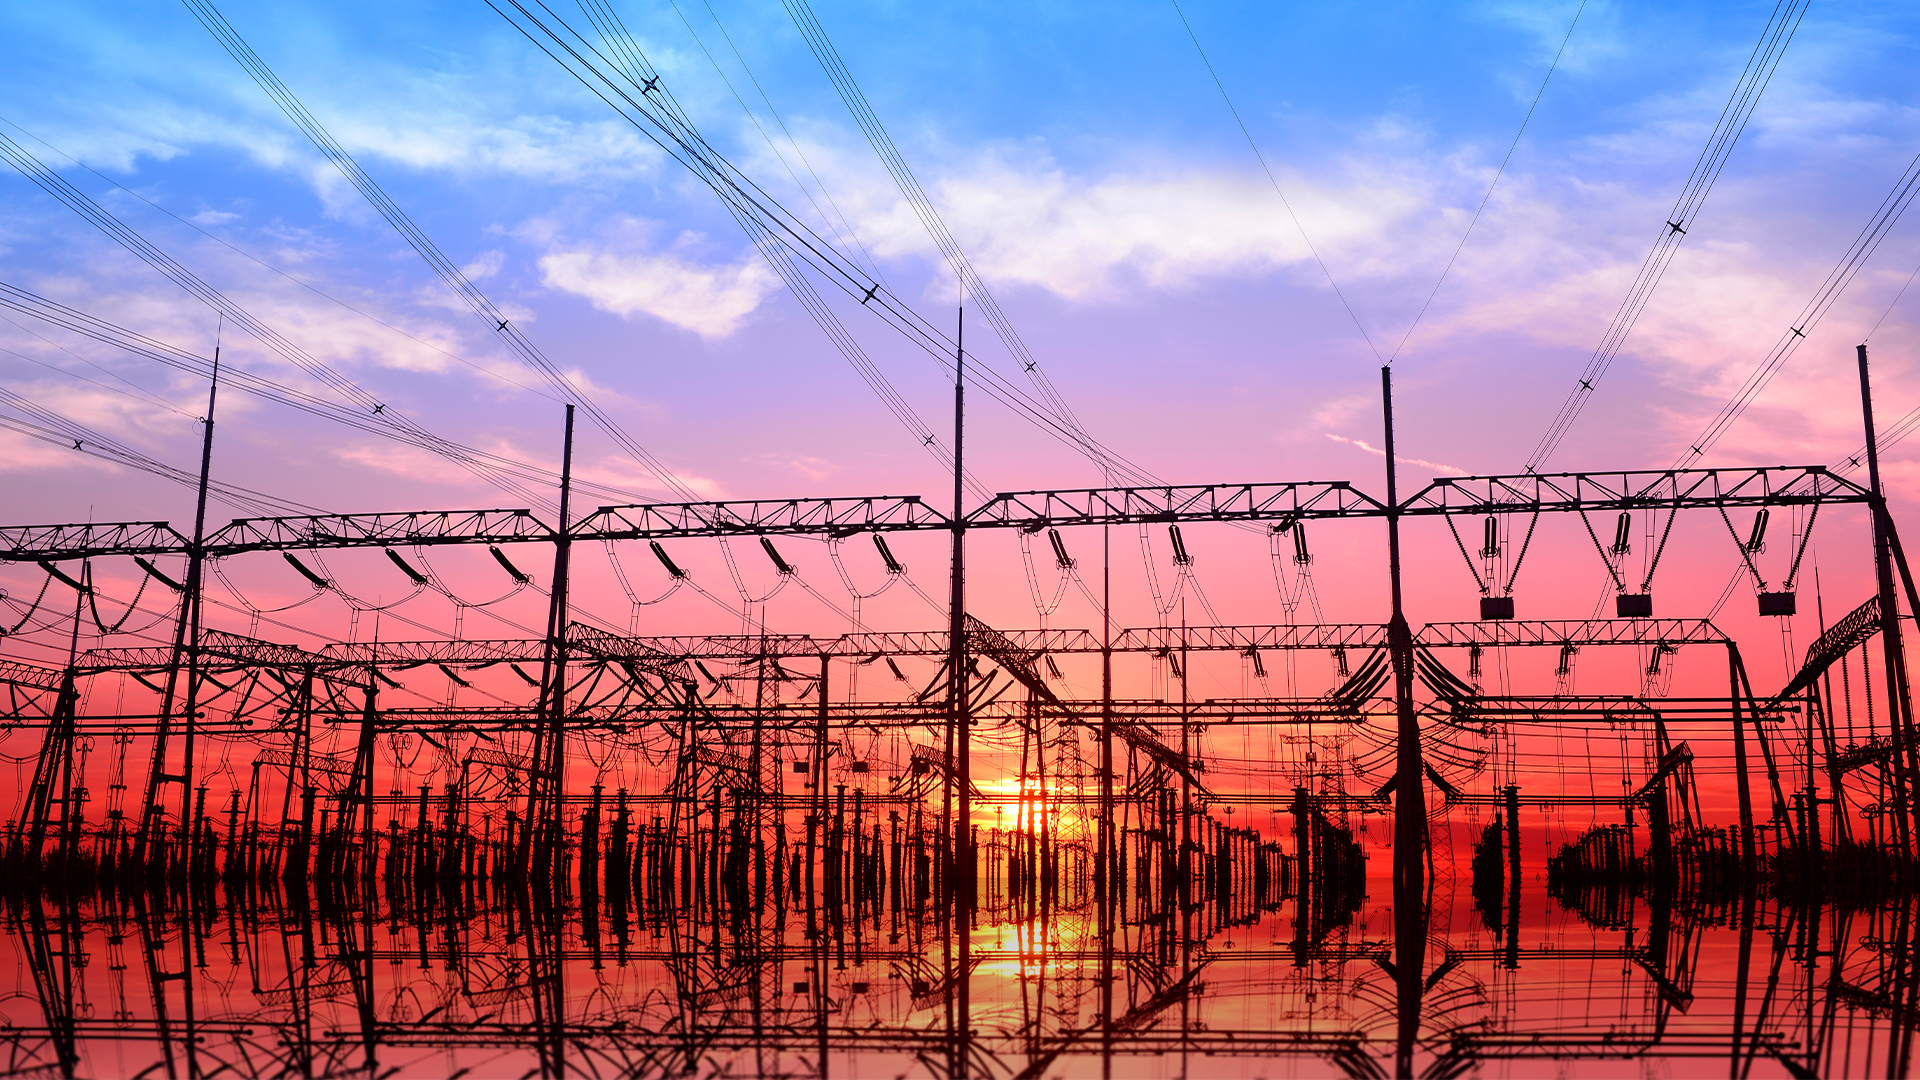 Energy-wires-electricity-power-plant